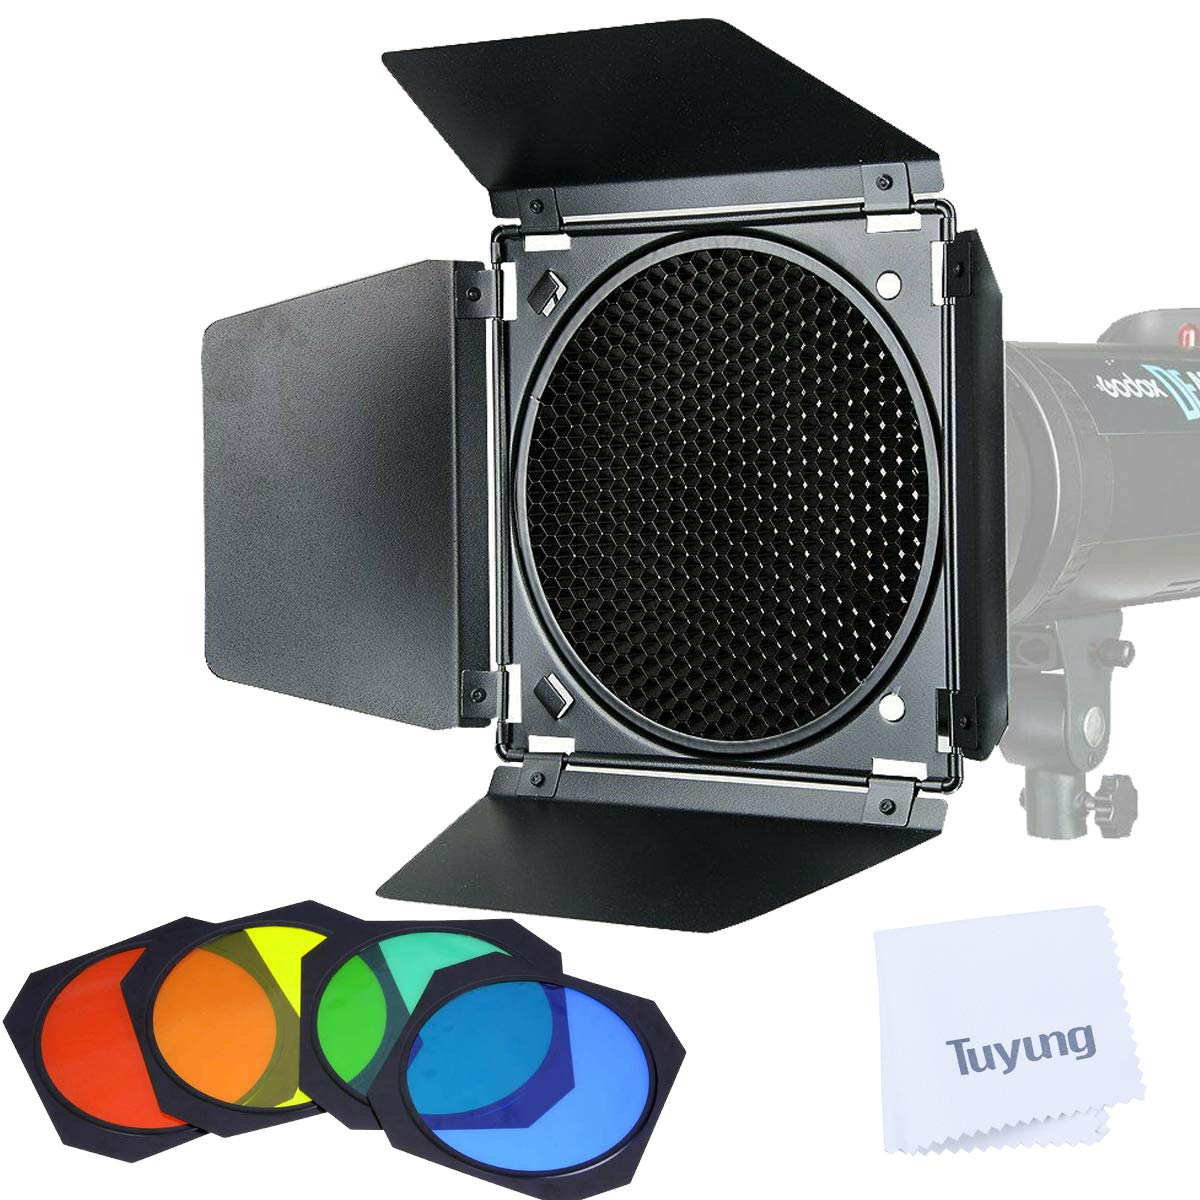 Godox BD-04 Barn Door with Honeycomb Grid and 4 Color Gel Filters(Red Yellow Blue Green) Compatible for Godox 7'' Standard Reflectors for AD600B/AD600BM/AD600Pro/SL60W/SL150W/SL200W/MS200/MS300 by Godox